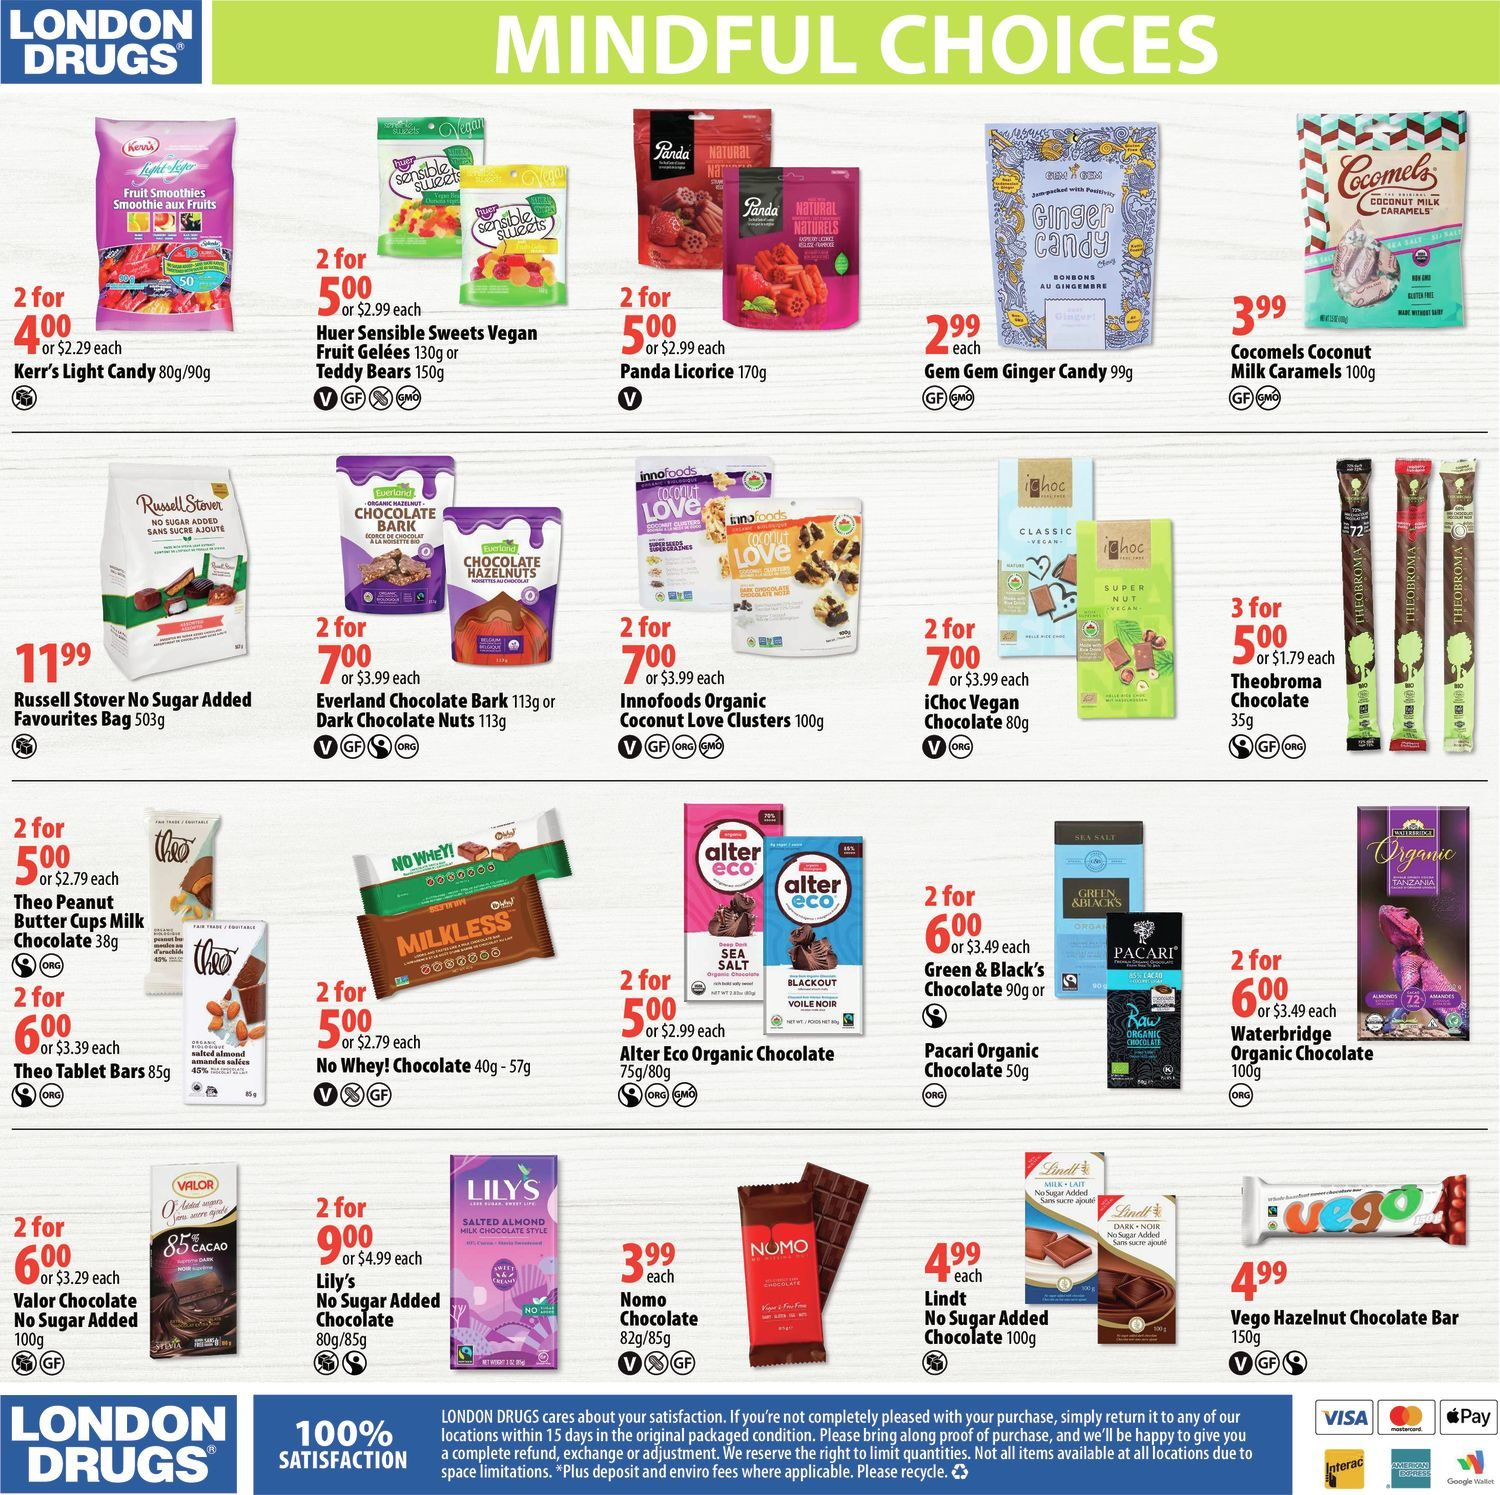 London Drugs - Mindful Choices - Choices To Support Your Lifestyle - Page 8